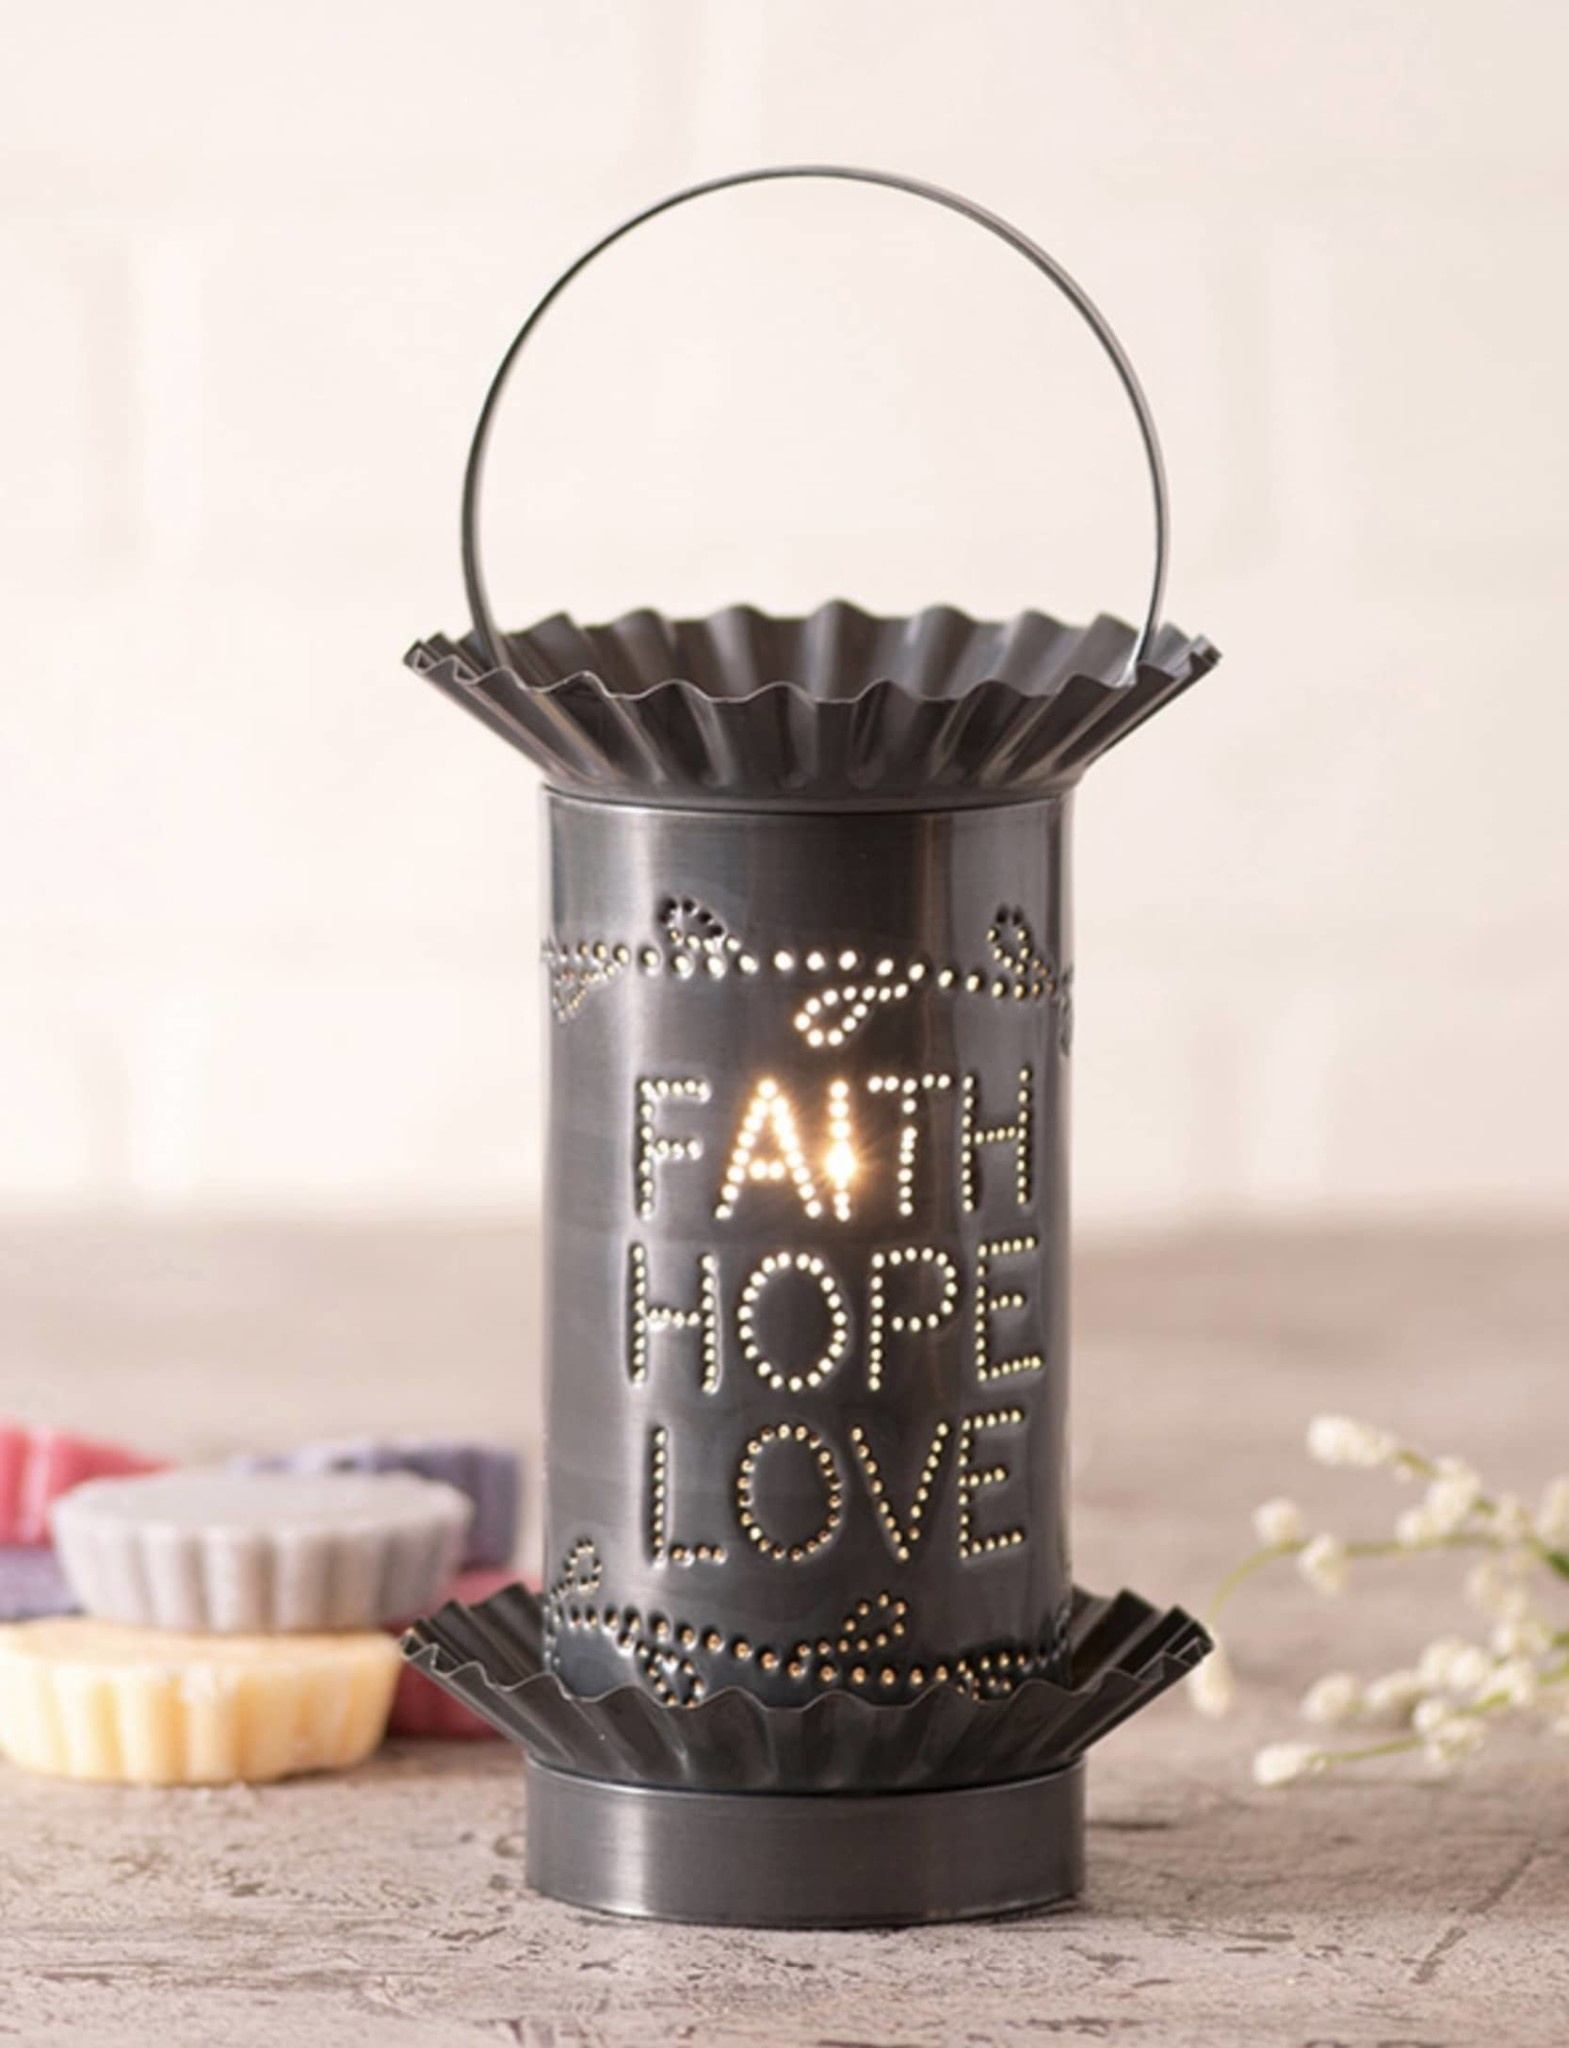 Irvin's Tinware Faith Hope Love Mini Wax Warmer in Country Punched Tin